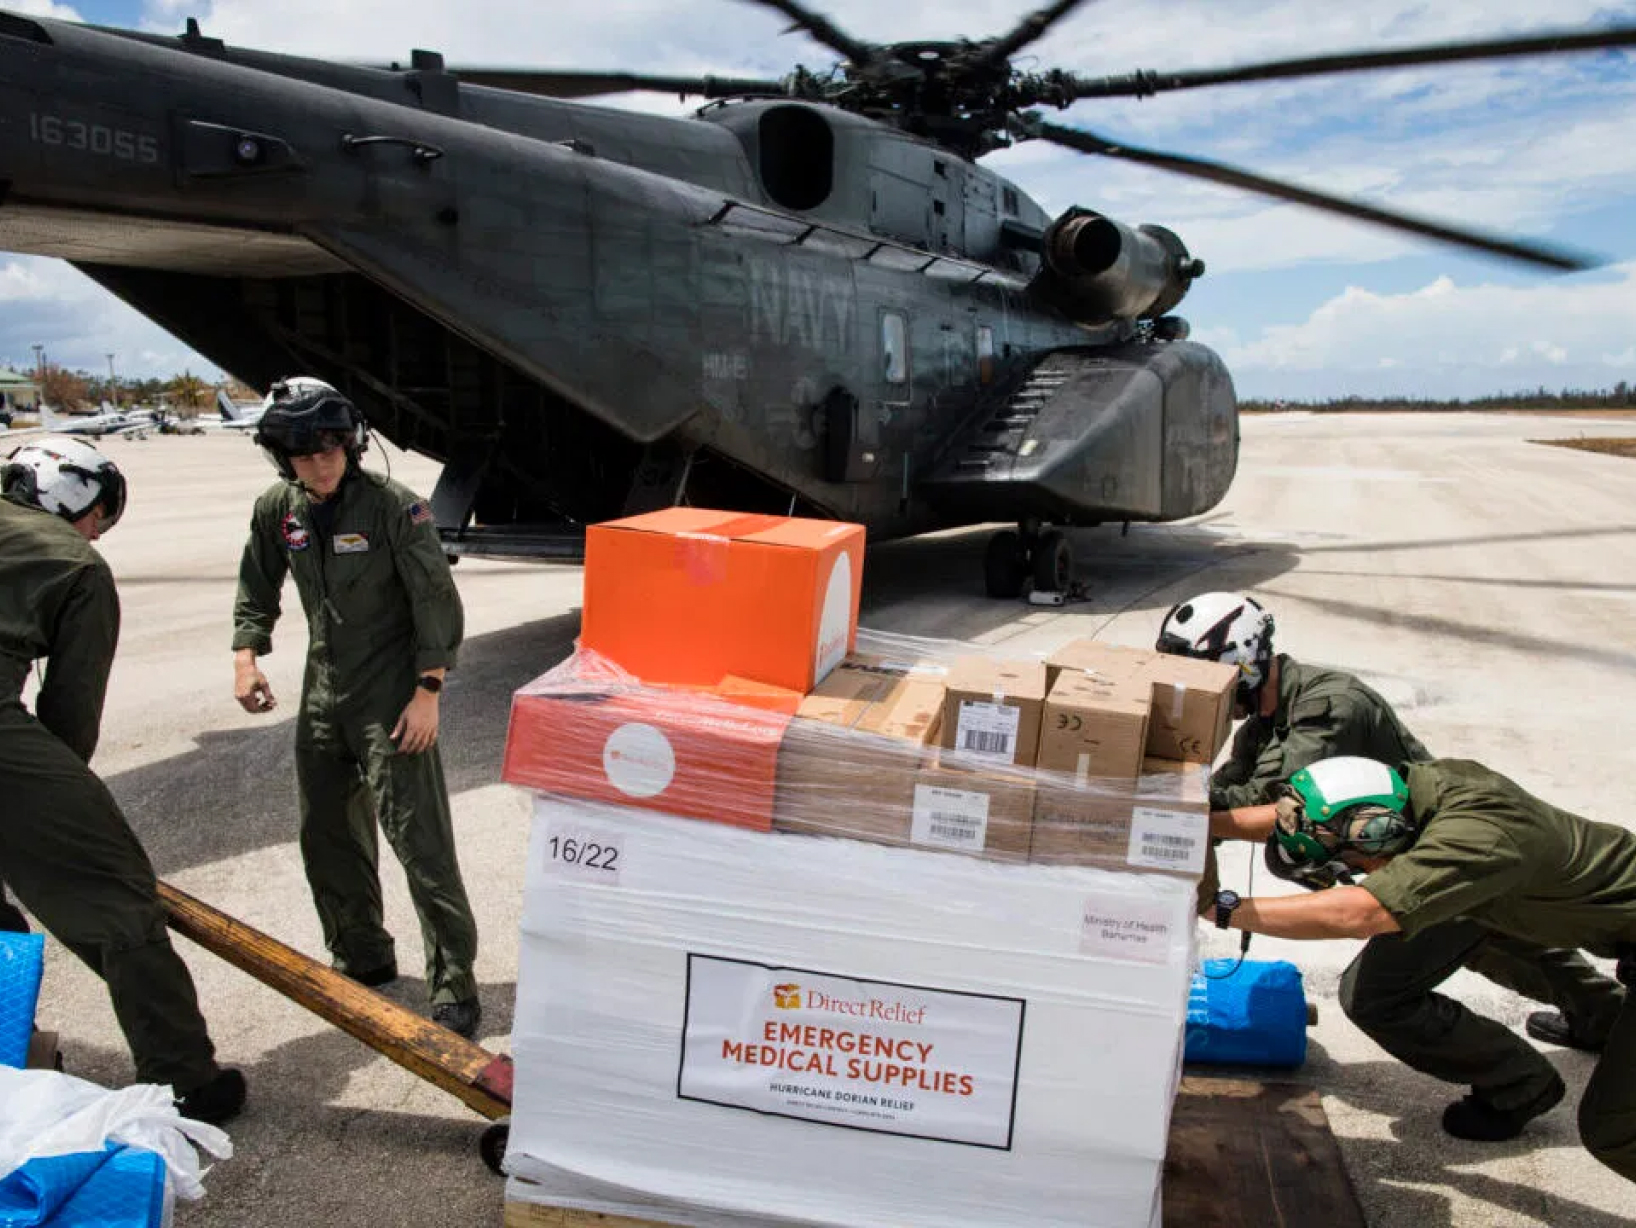 Four men in helmets pushing a pallet labelled emergency medical supplies into a large black Navy helicopter